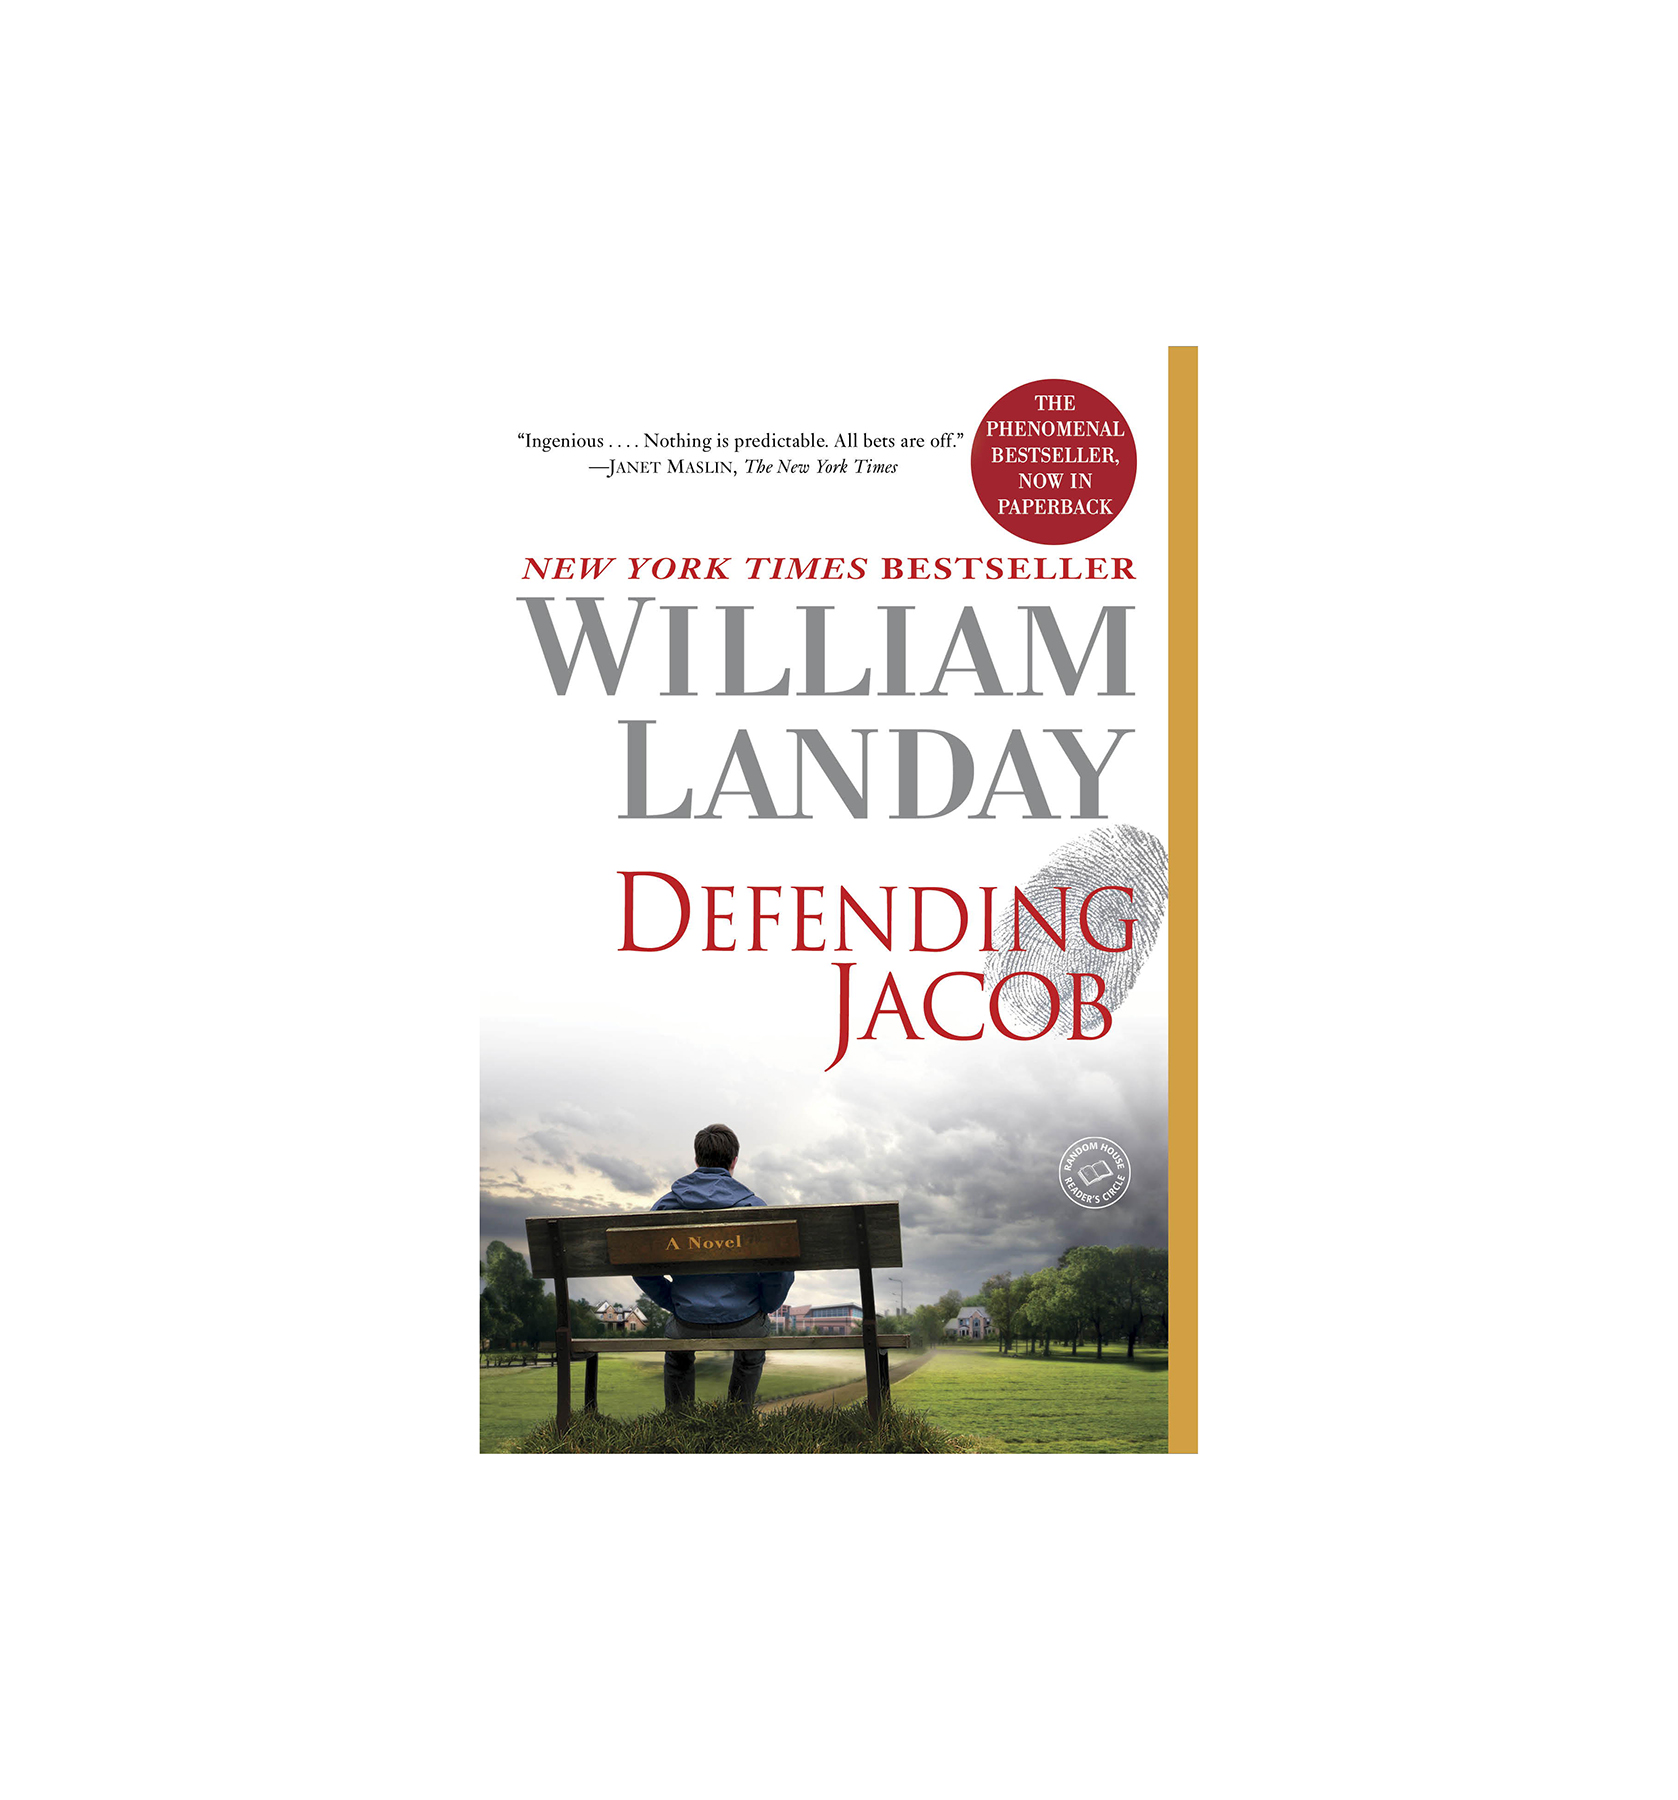 Defending Jacob, by William Landay